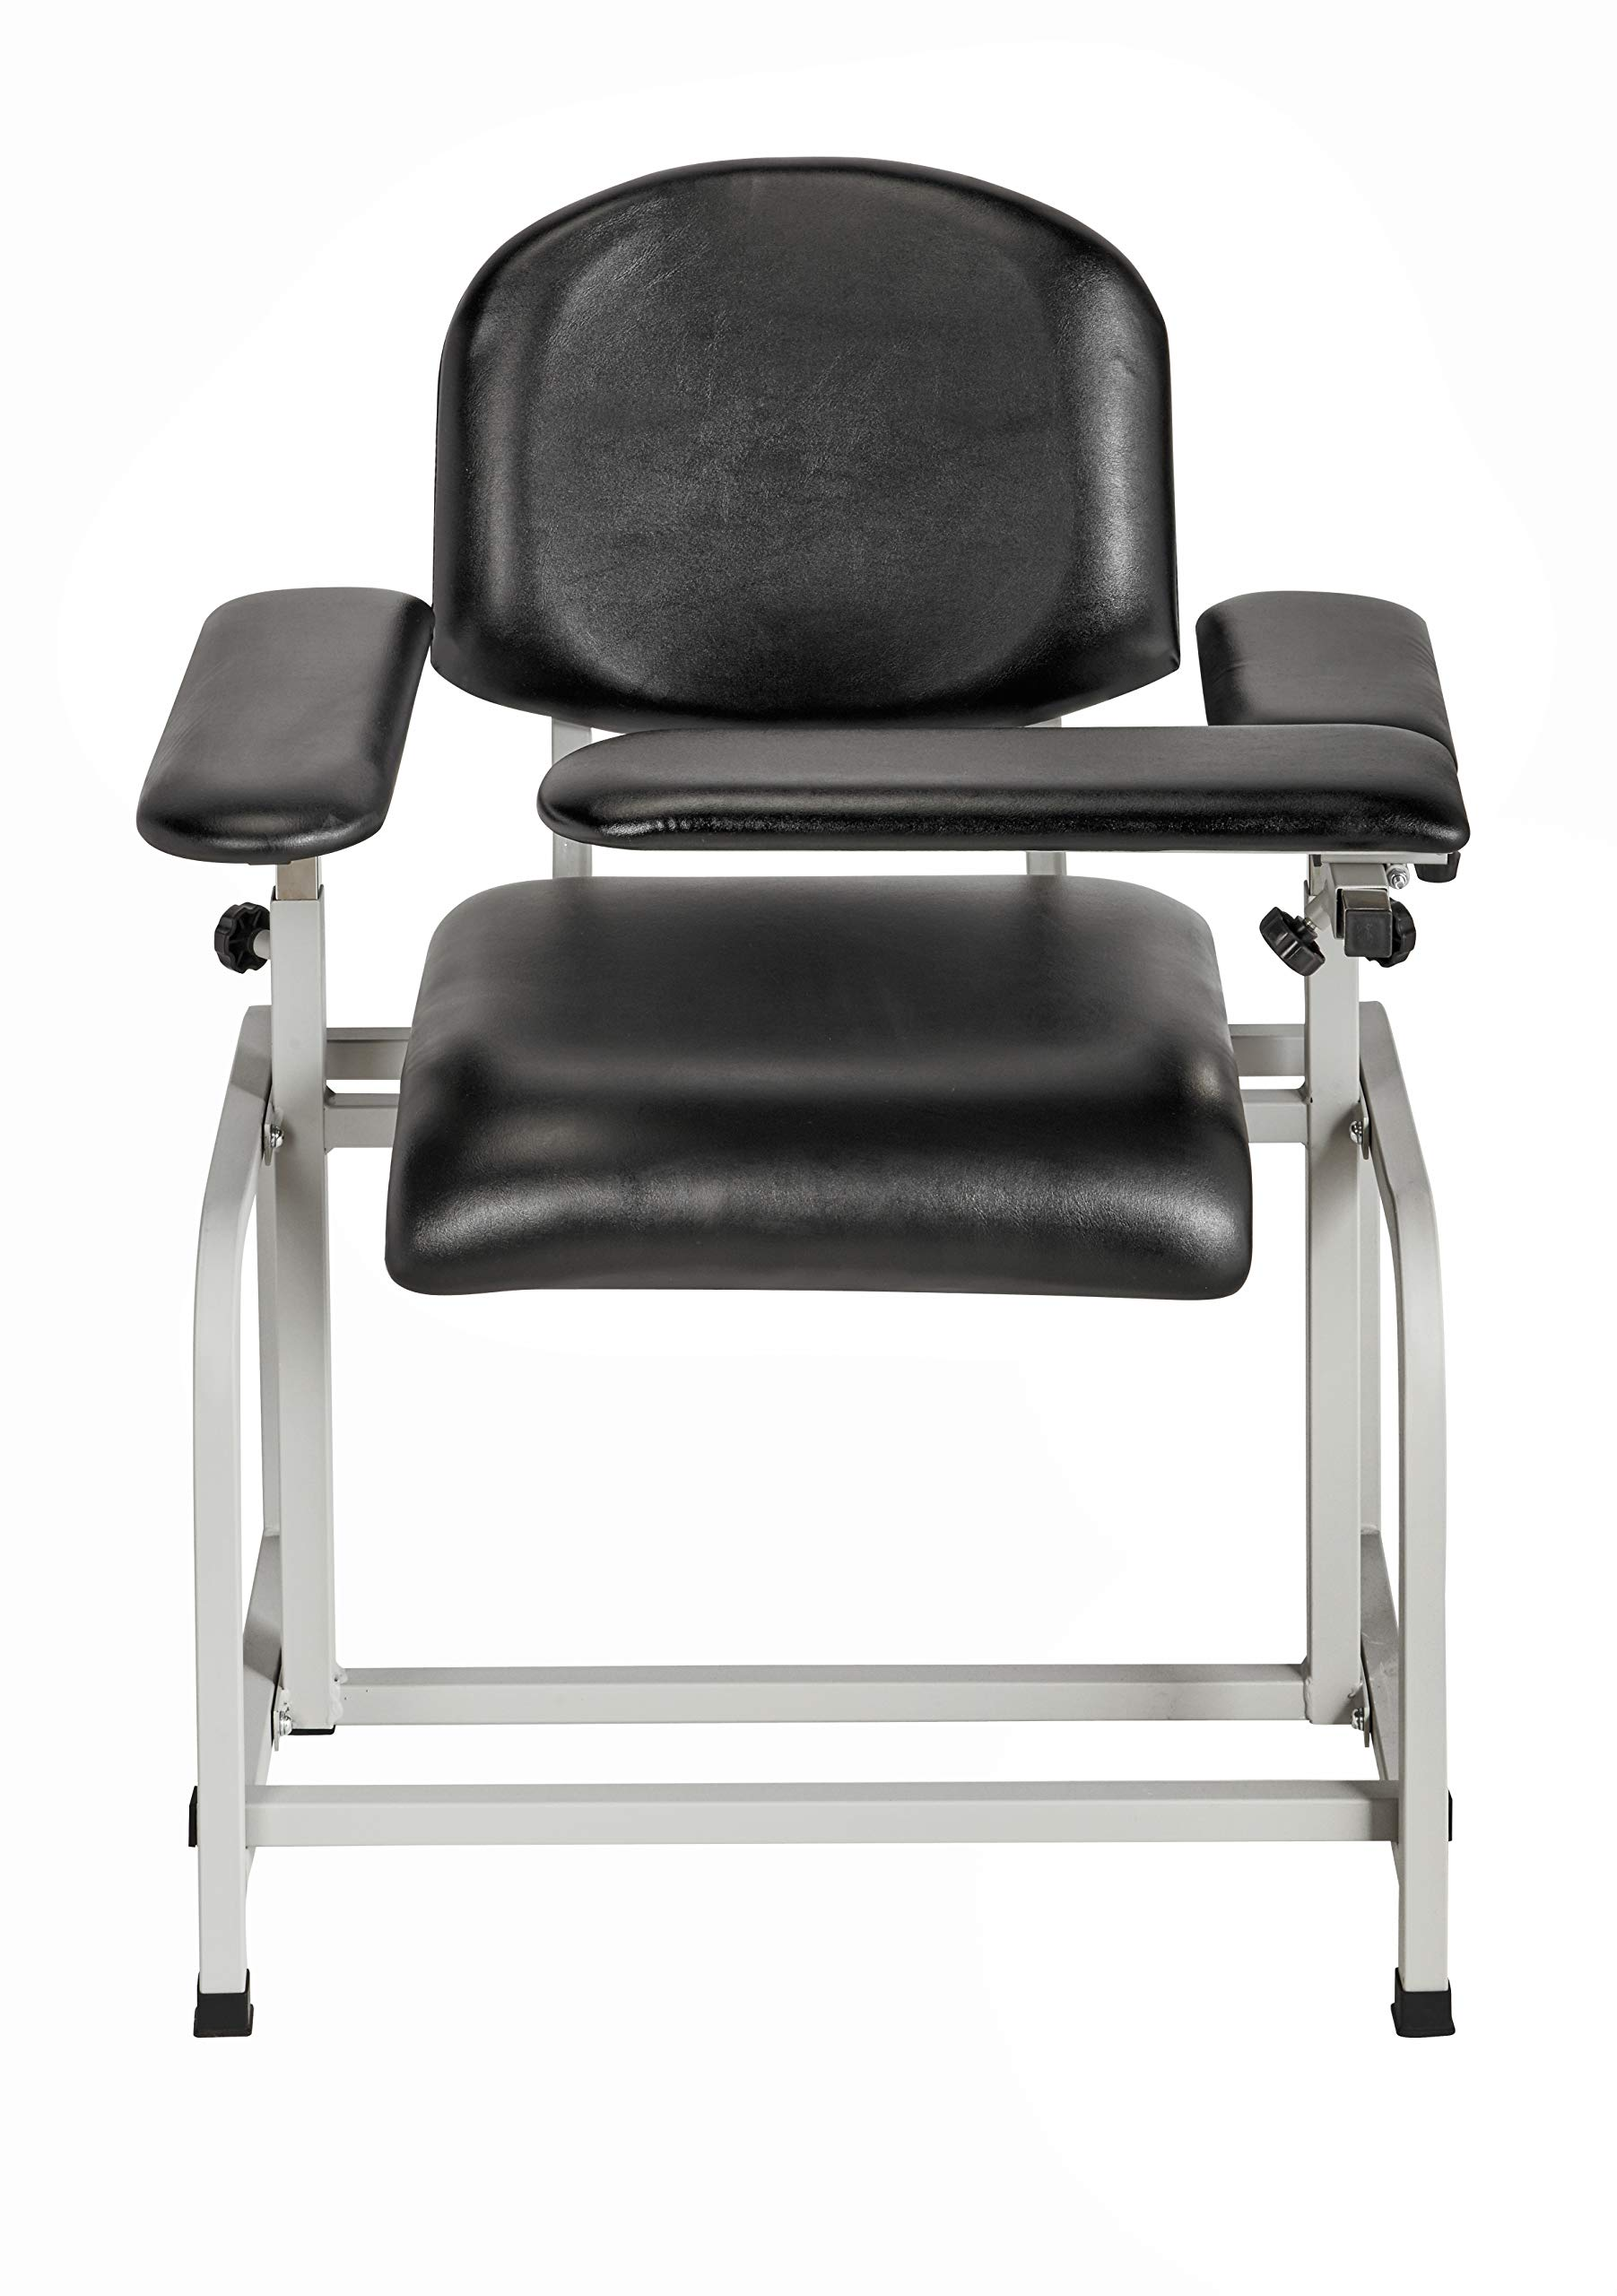 AdirMed Padded Blood Drawing Chair (Black)